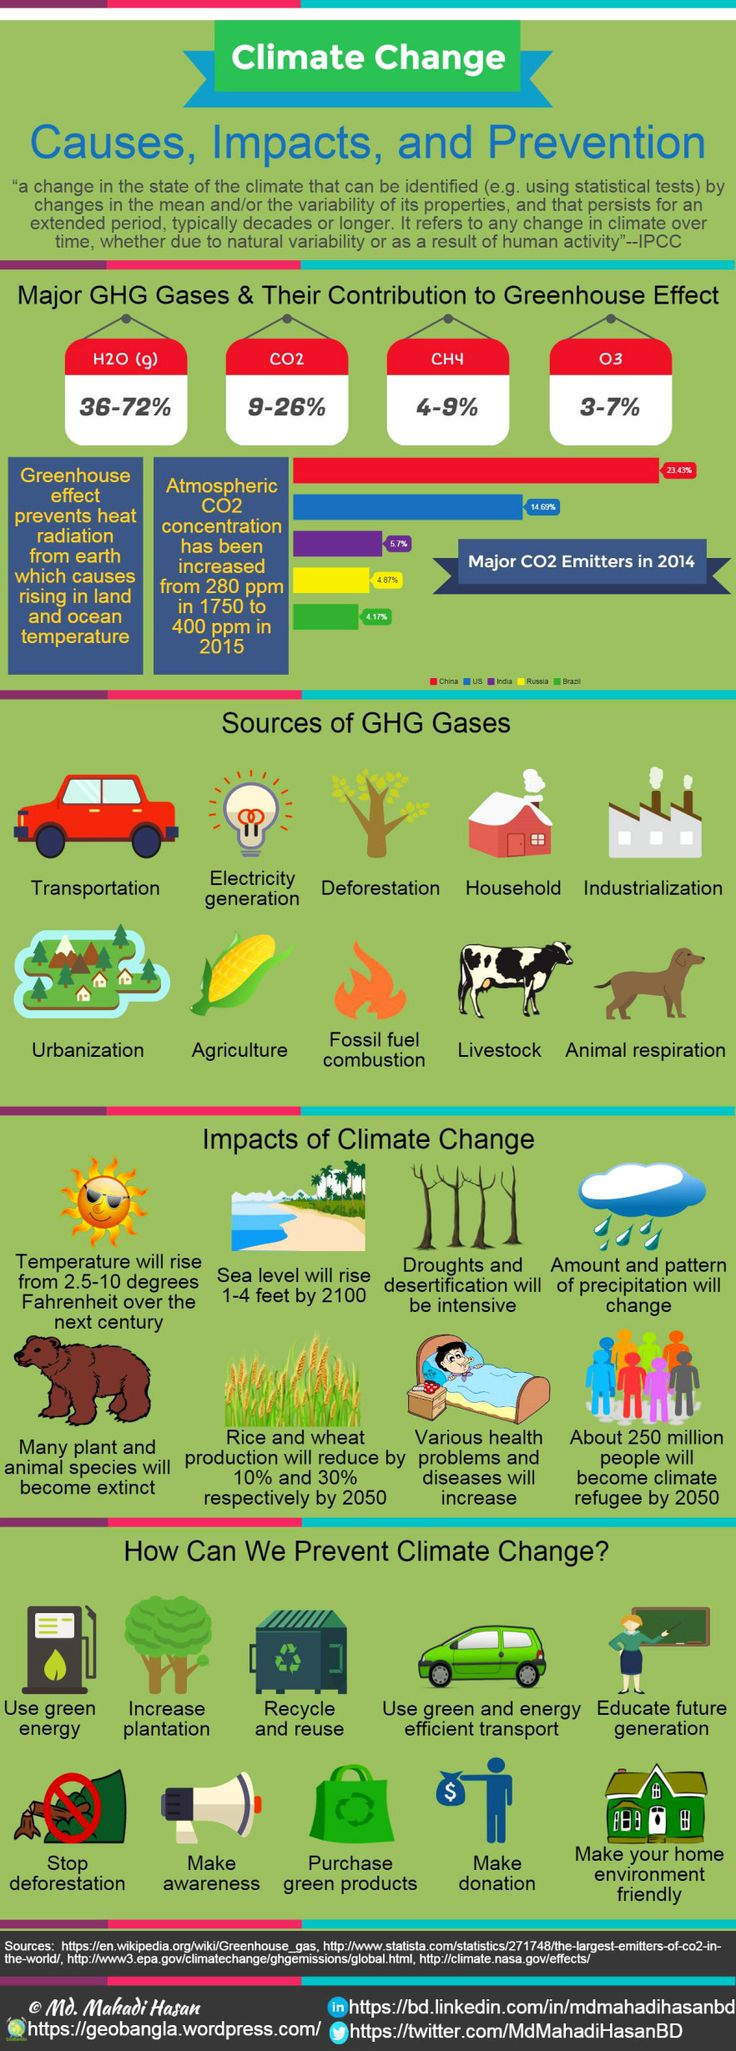 Heat clipart greenhouse gas On threat prevents Greenhouse greatest